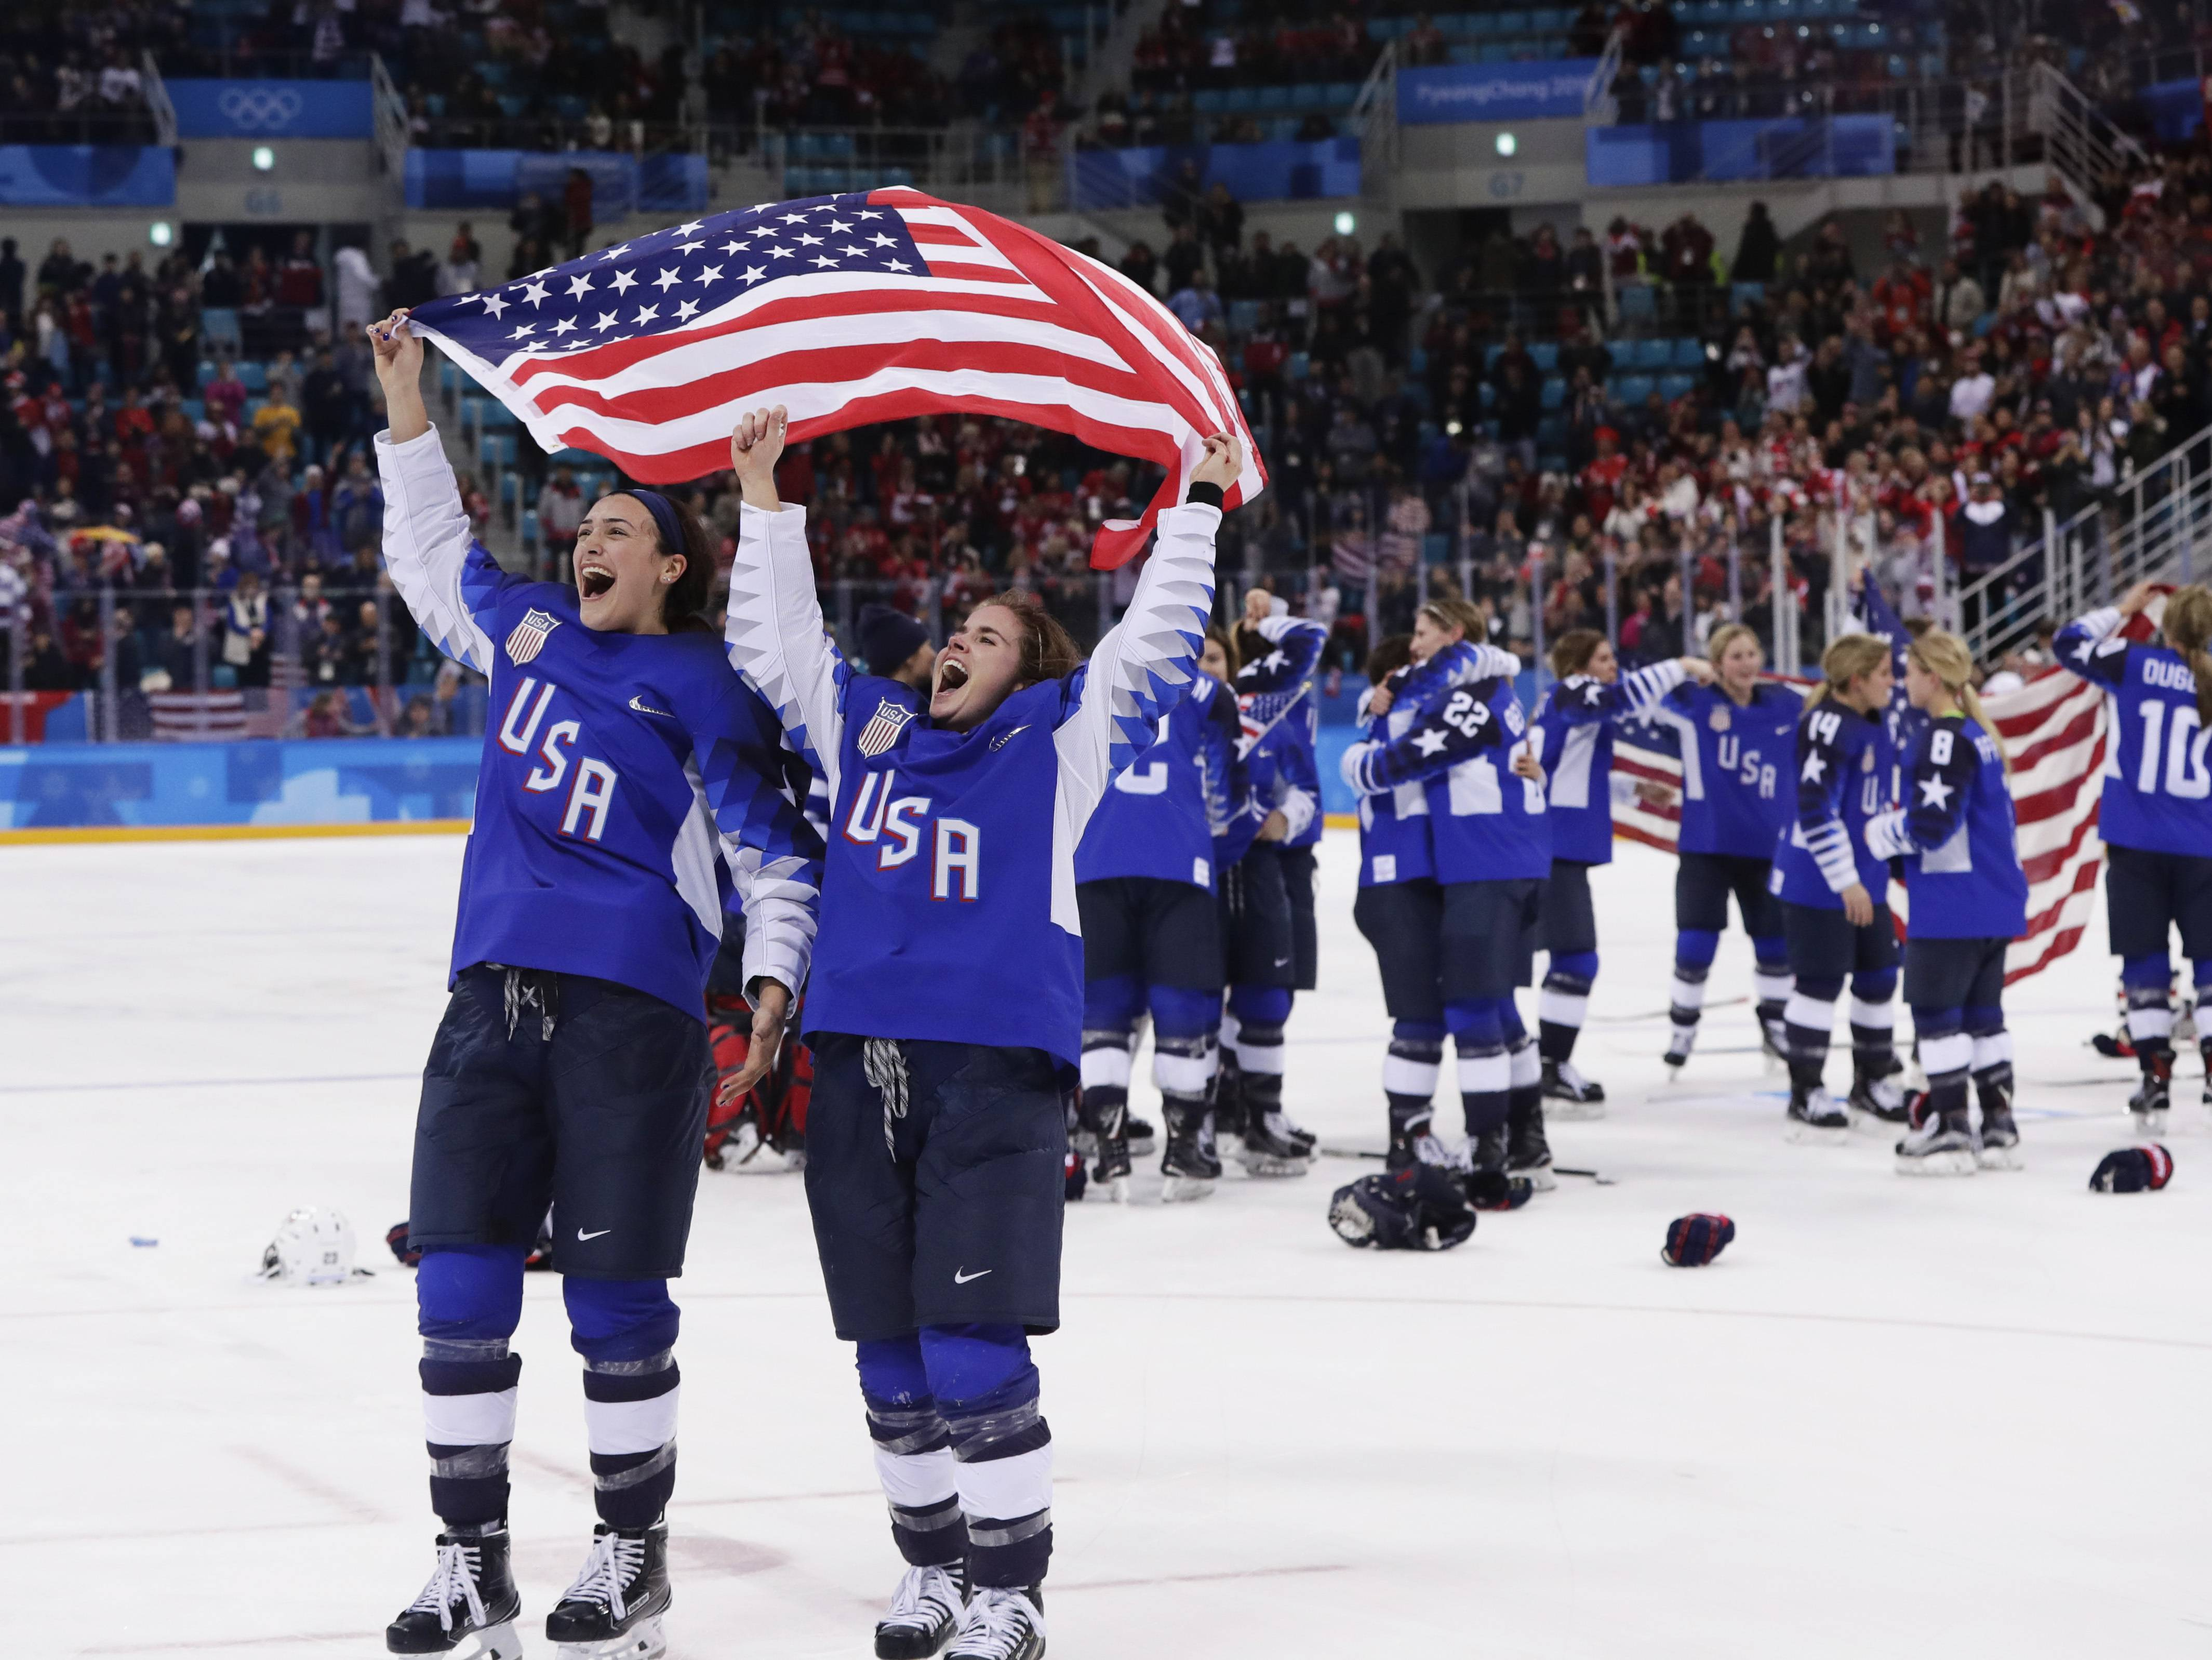 The United States players celebrate after winning the women's gold medal hockey game against Canada at the 2018 Winter Olympics in Gangneung, South Korea, Thursday morning.